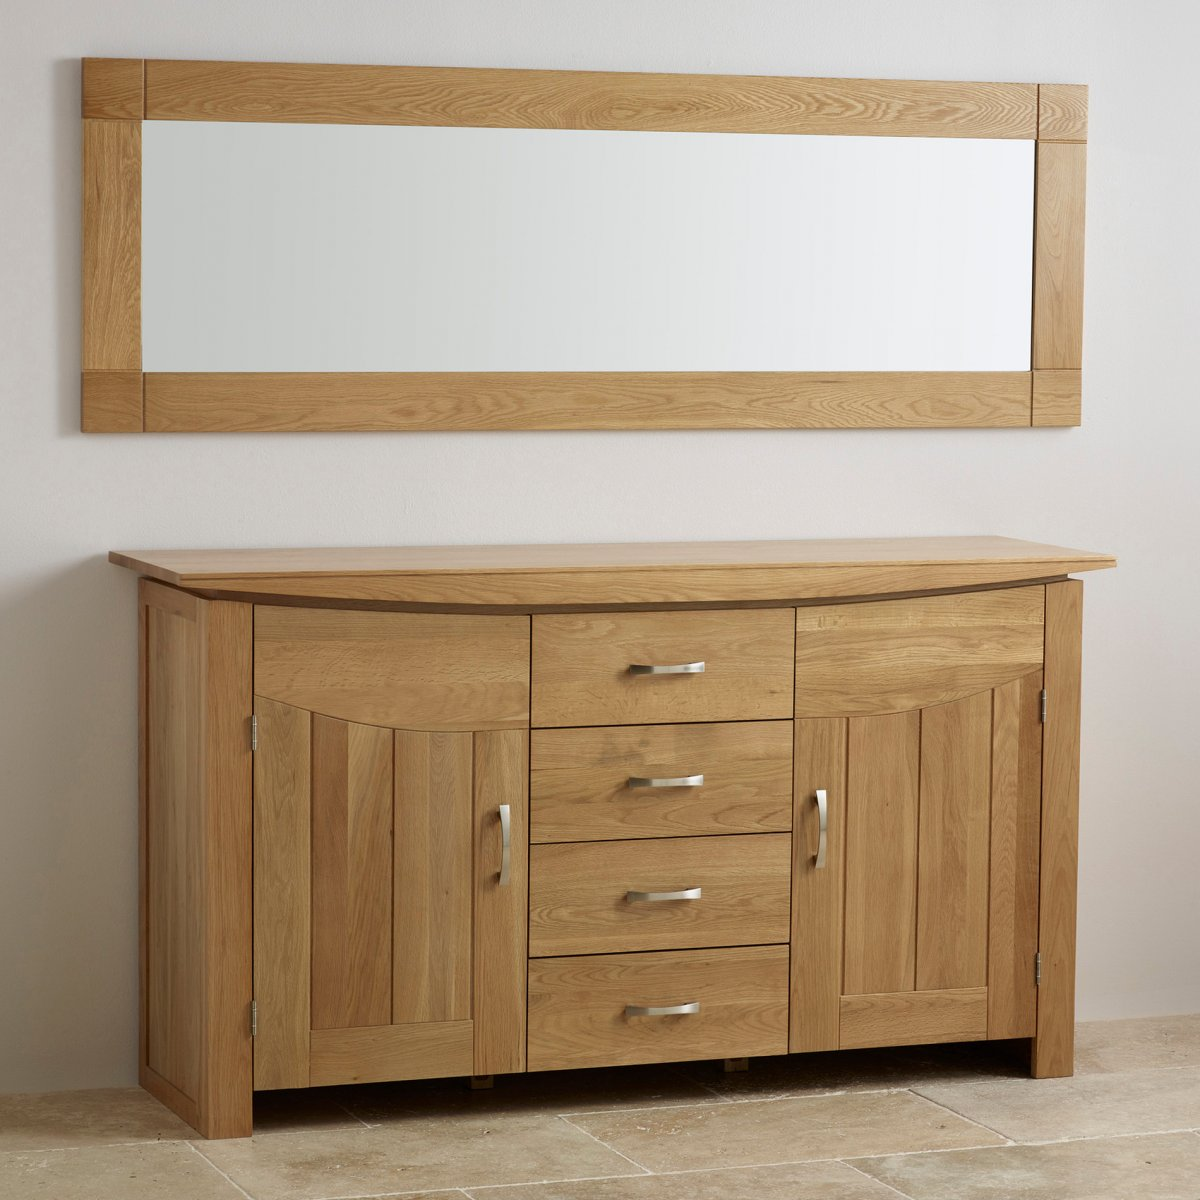 Oak Furniture Land Bedroom Furniture Full Length Table And Wall Mirrors Oak Furniture Land